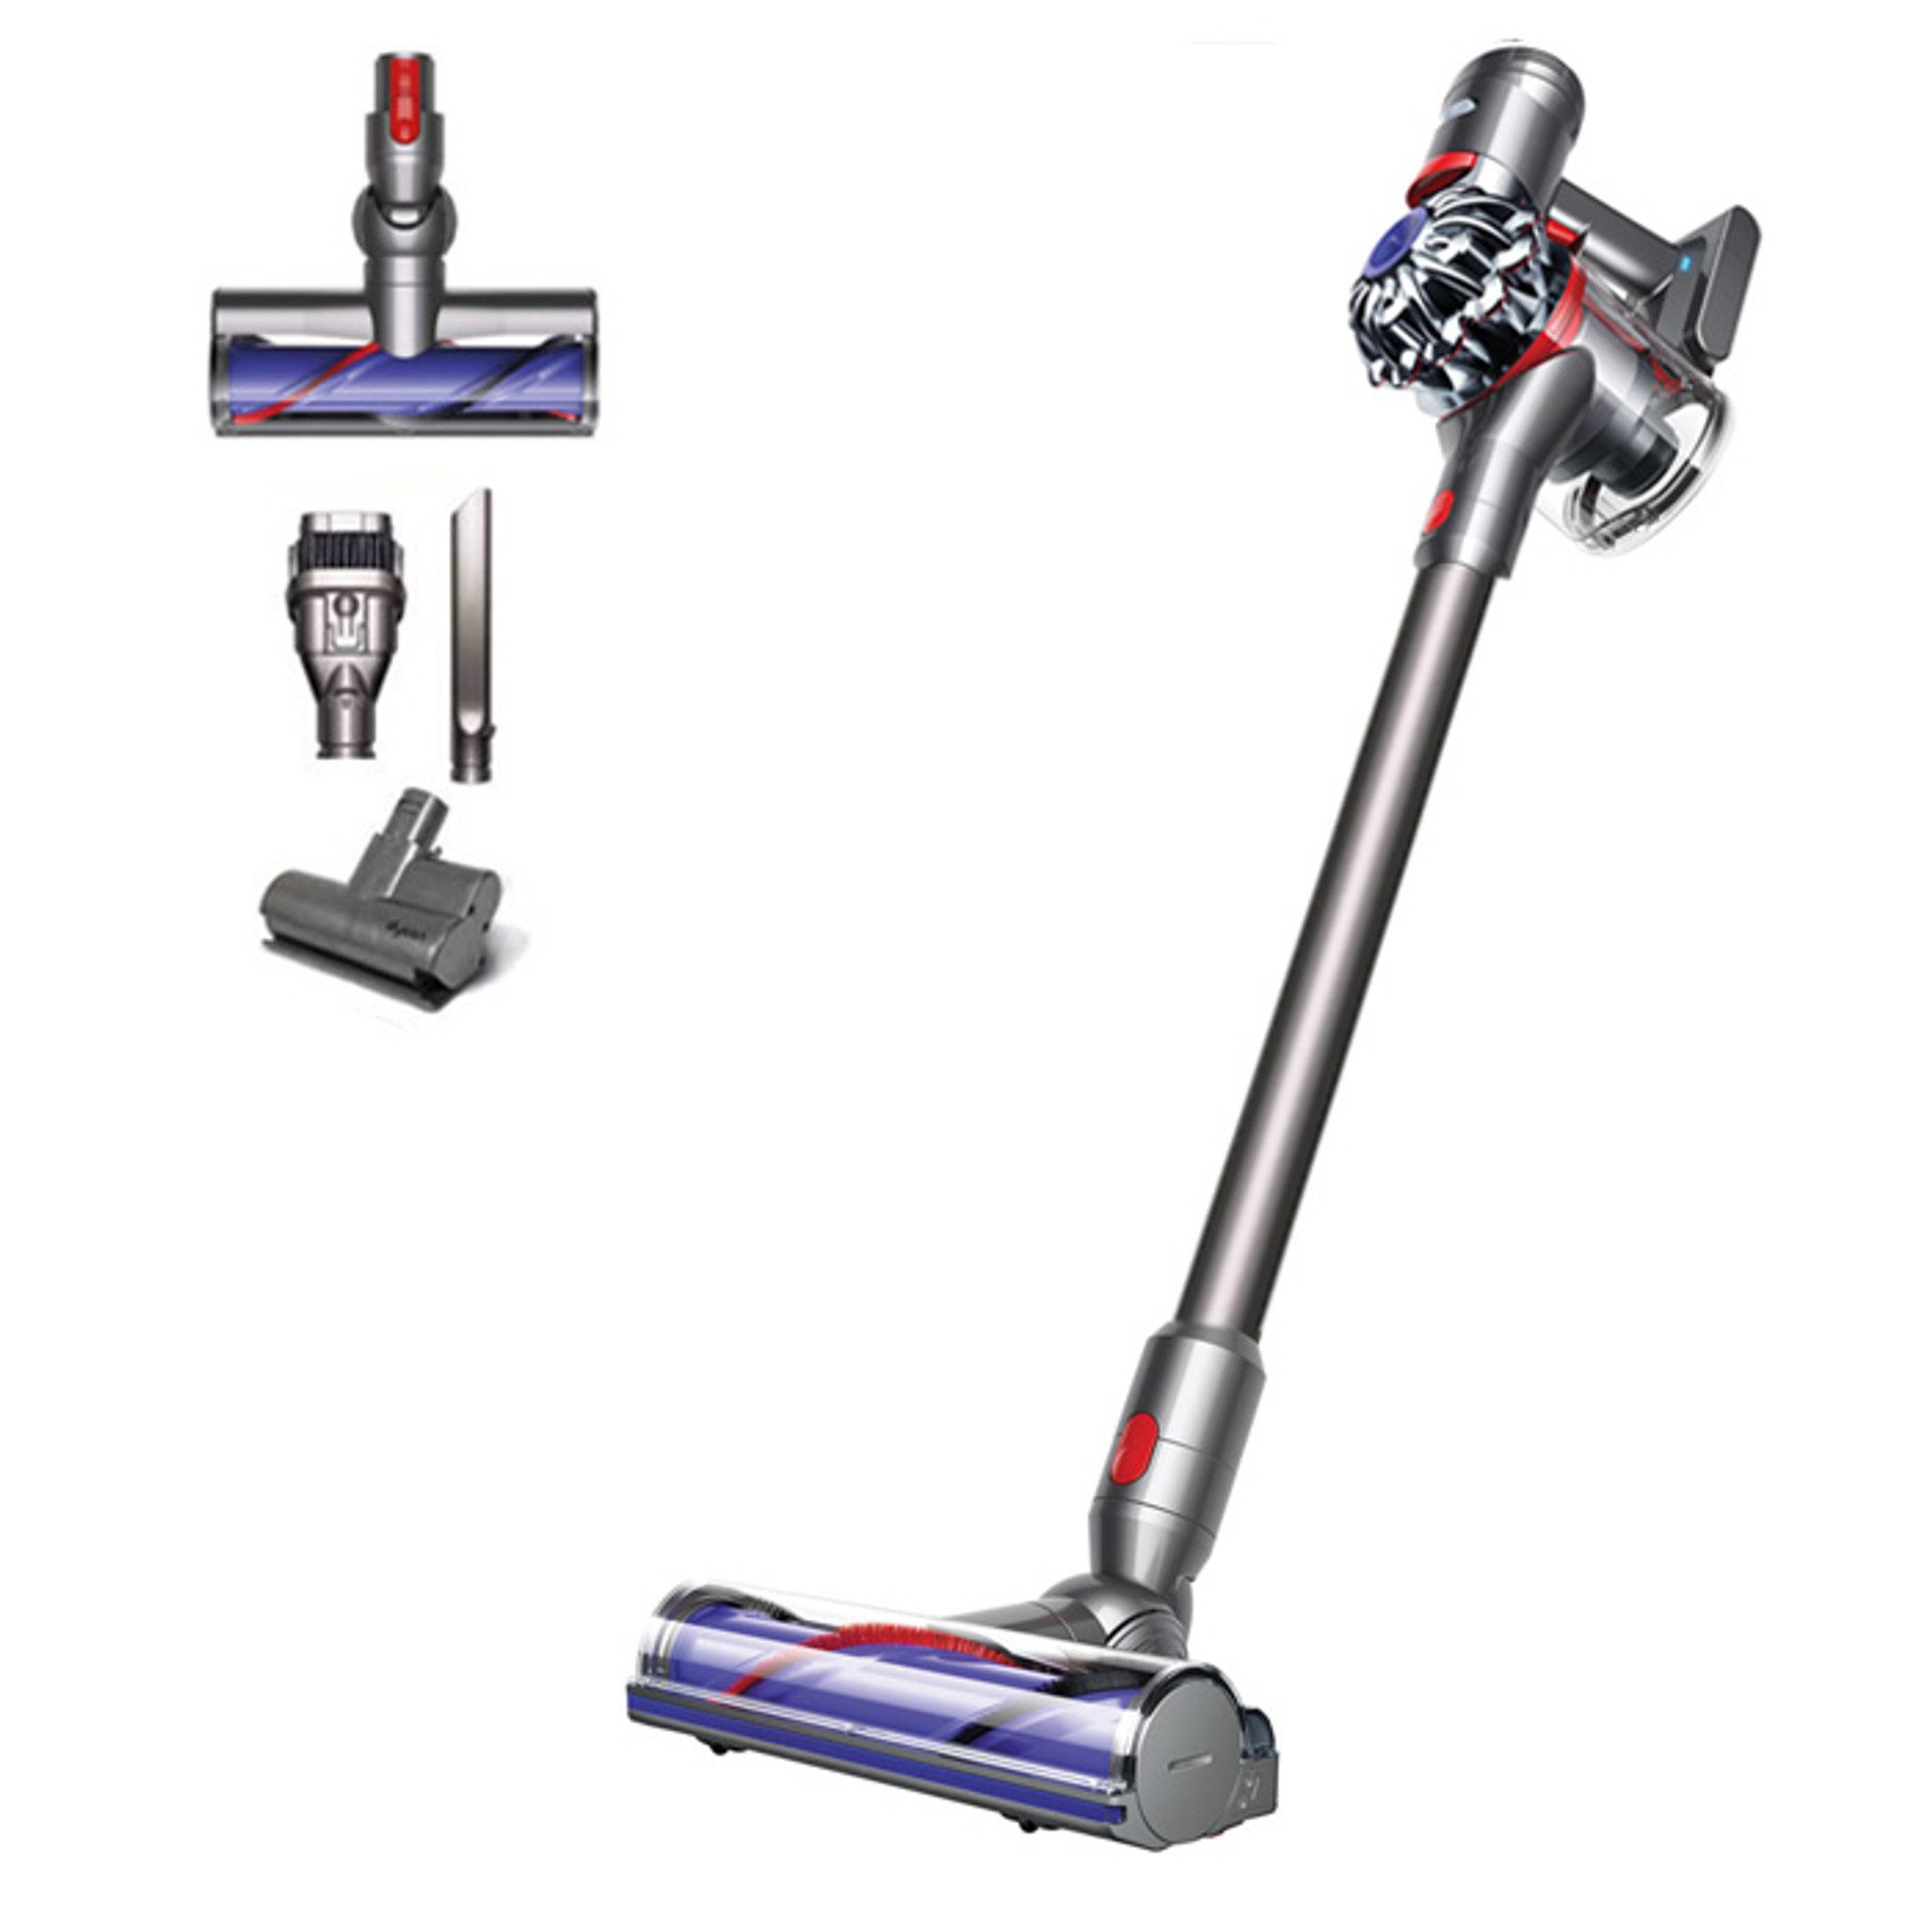 Buy Dyson V7 Animal Extra Cordless Vacuum From Canada At